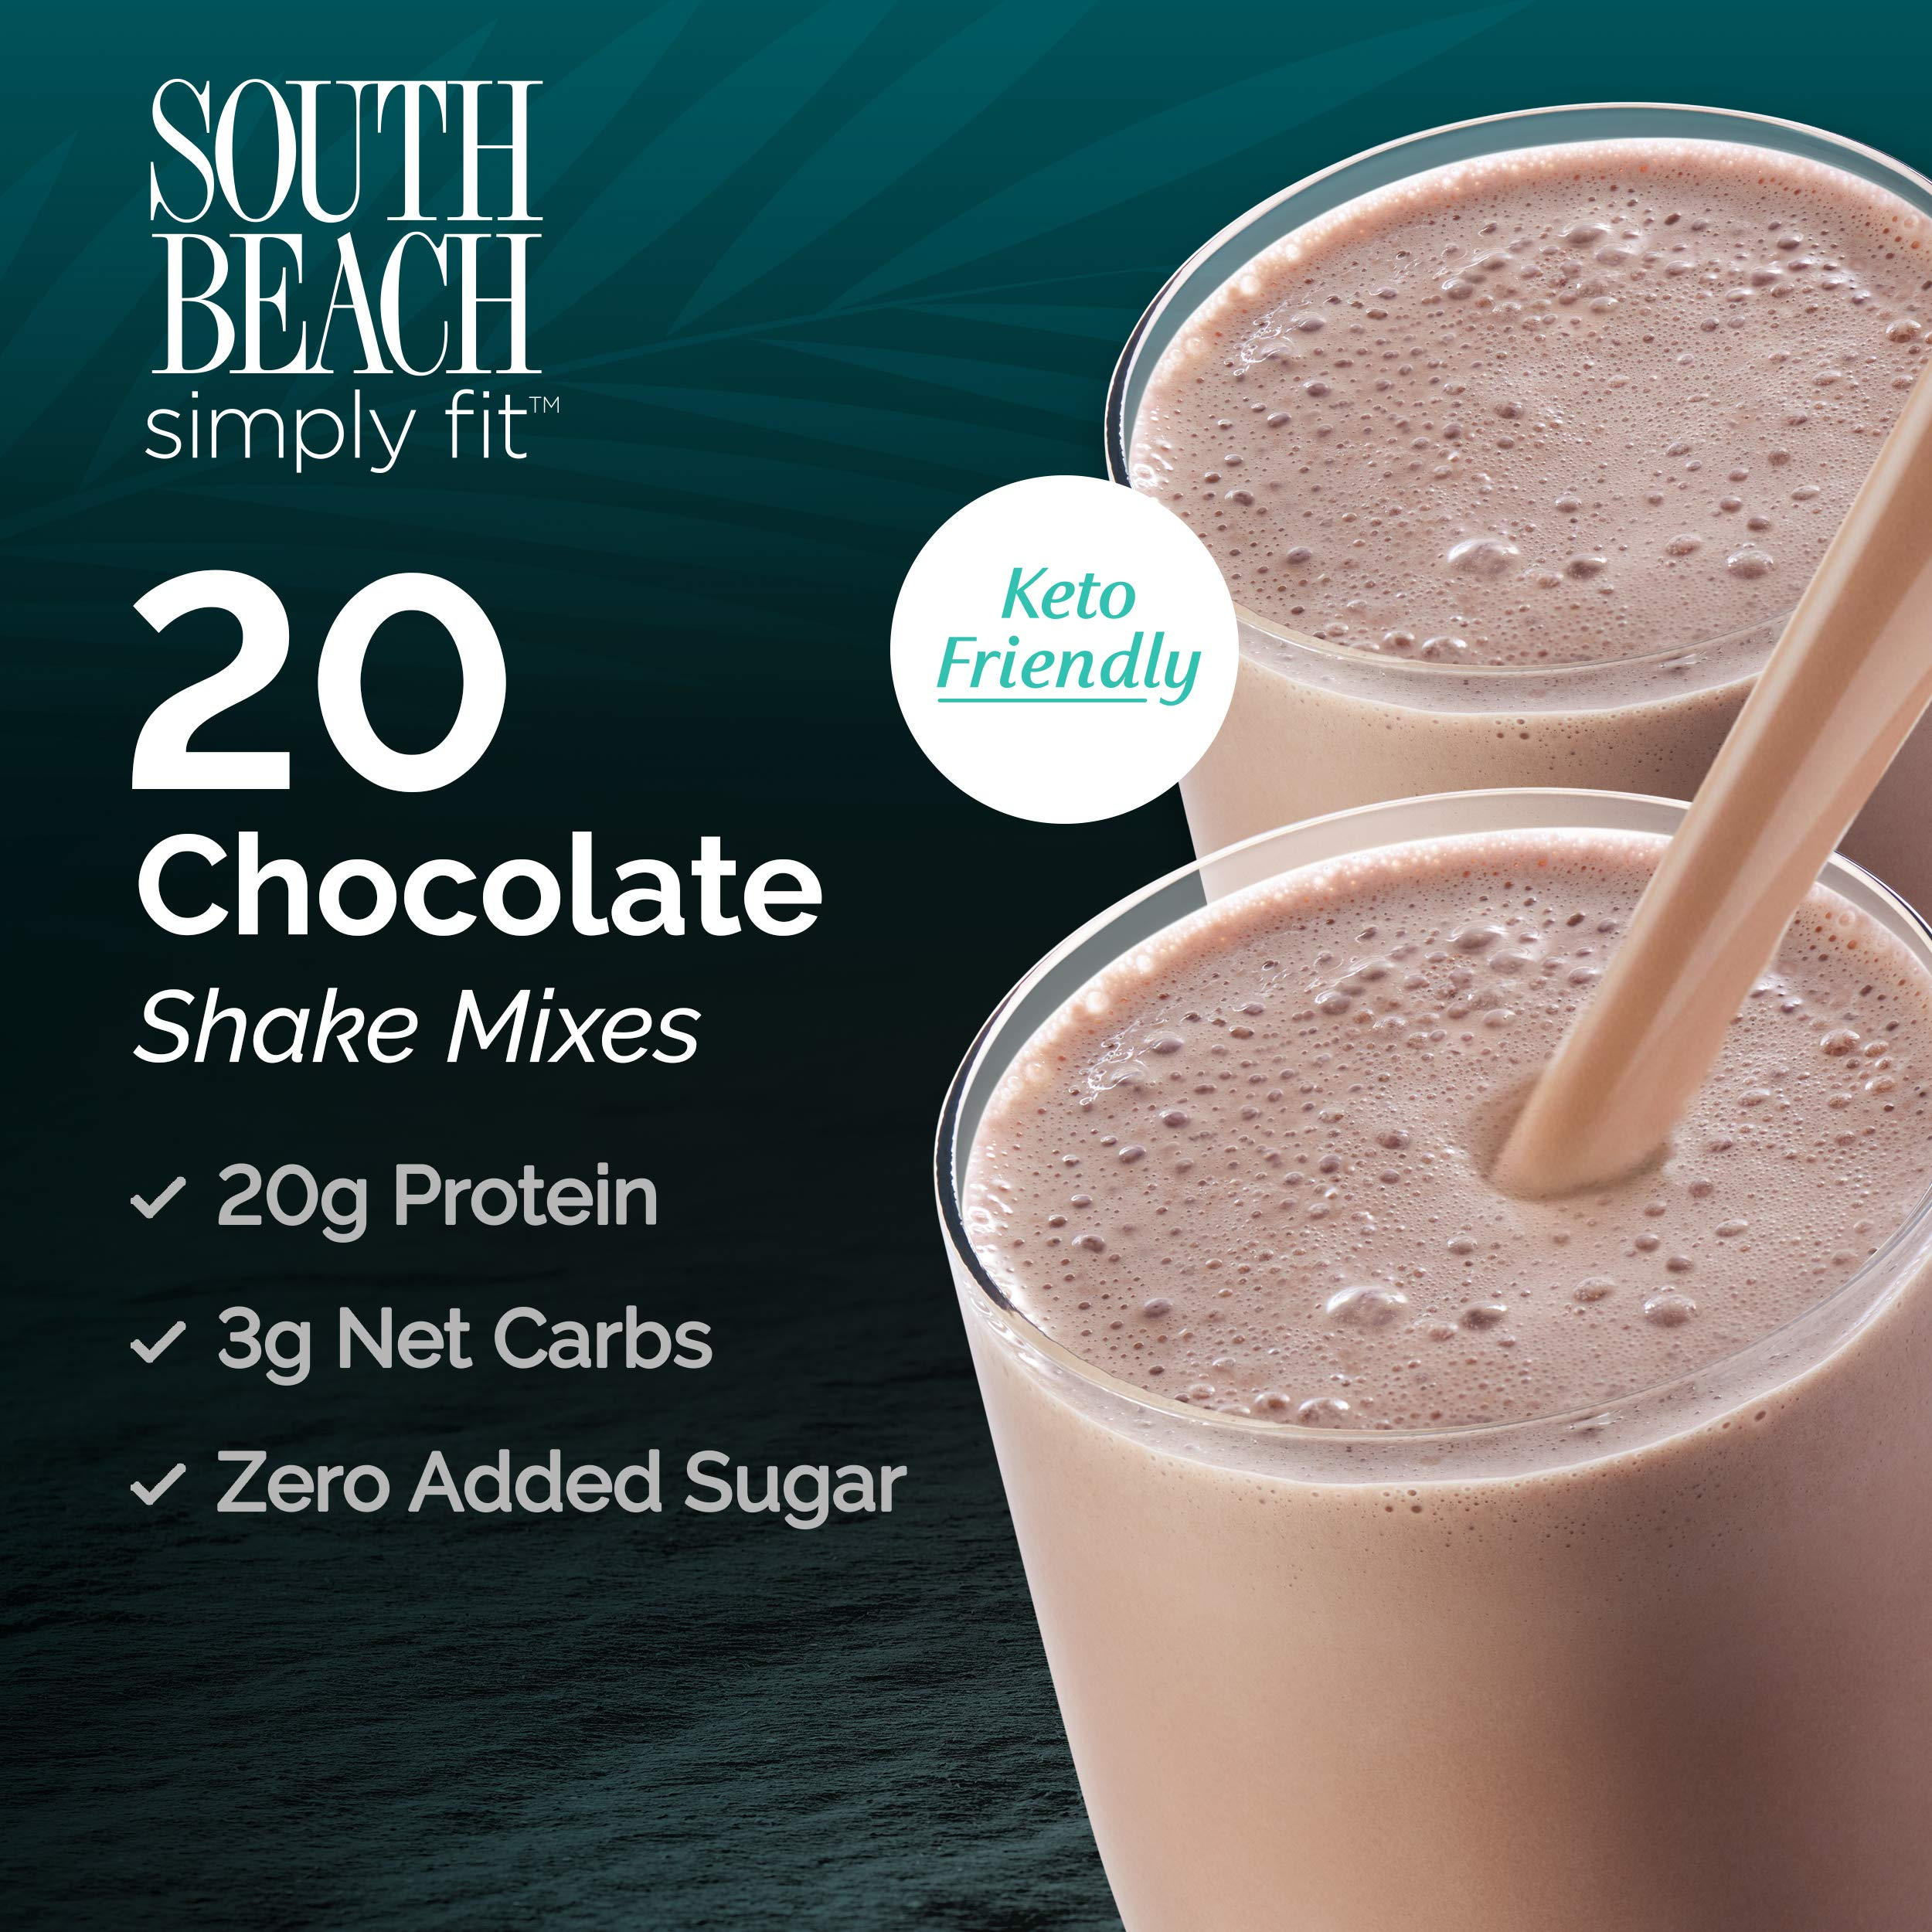 South Beach Simply Fit Shake Mix - Chocolate, 20 ct Case - Keto-Friendly Protein Shakes to Support Healthy Weight Loss by South Beach Simply Fit